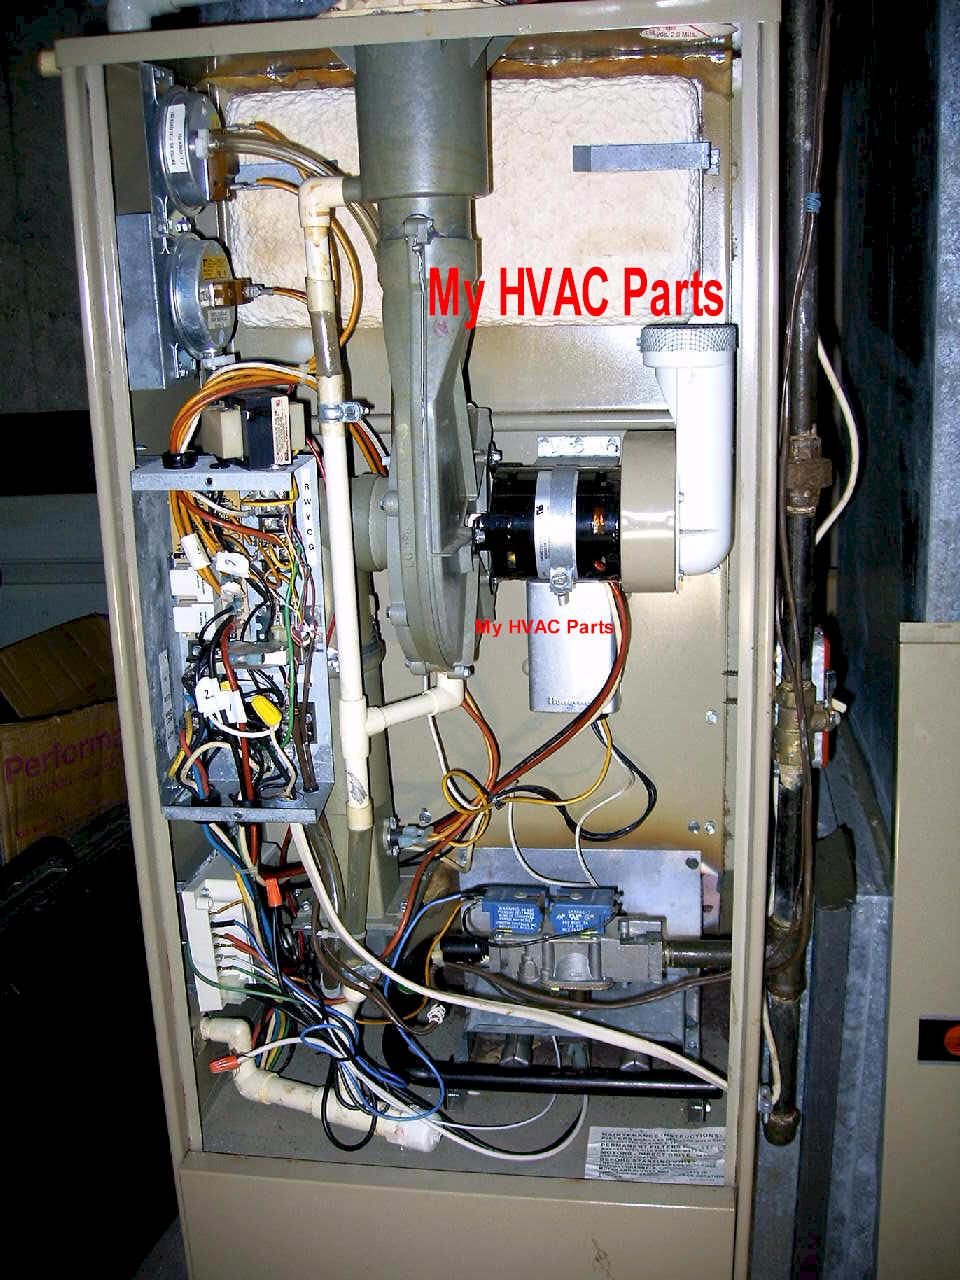 Furnace Fan Relay Circuit Board Wiring Diagram | Wiring Diagram - Furnace Control Board Wiring Diagram